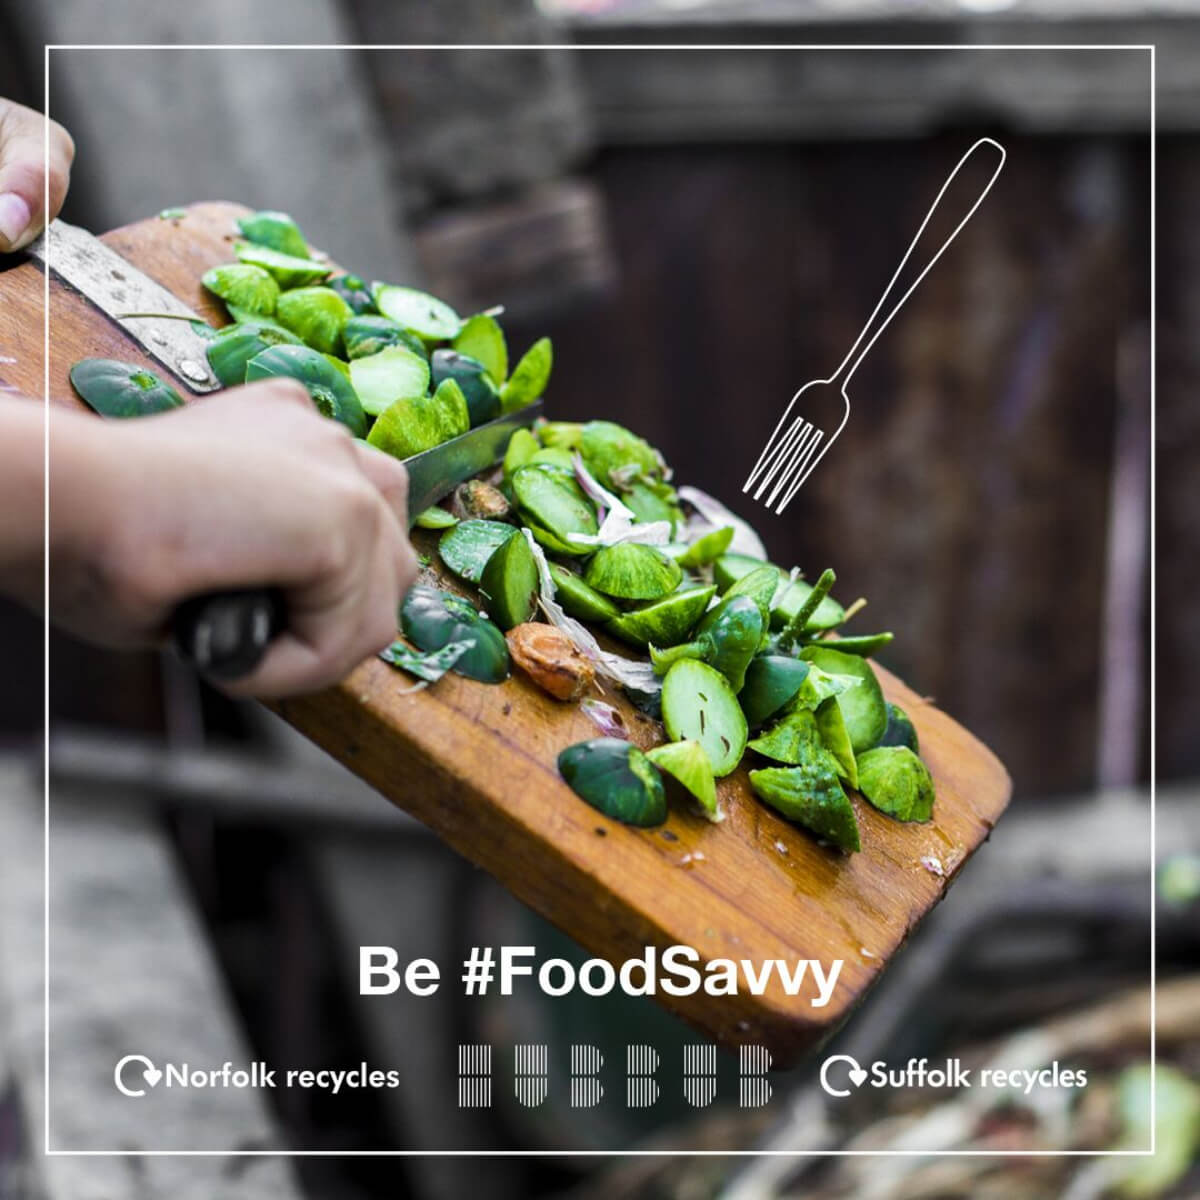 #Foodsavvy Campaign - sprouts being put in the bin